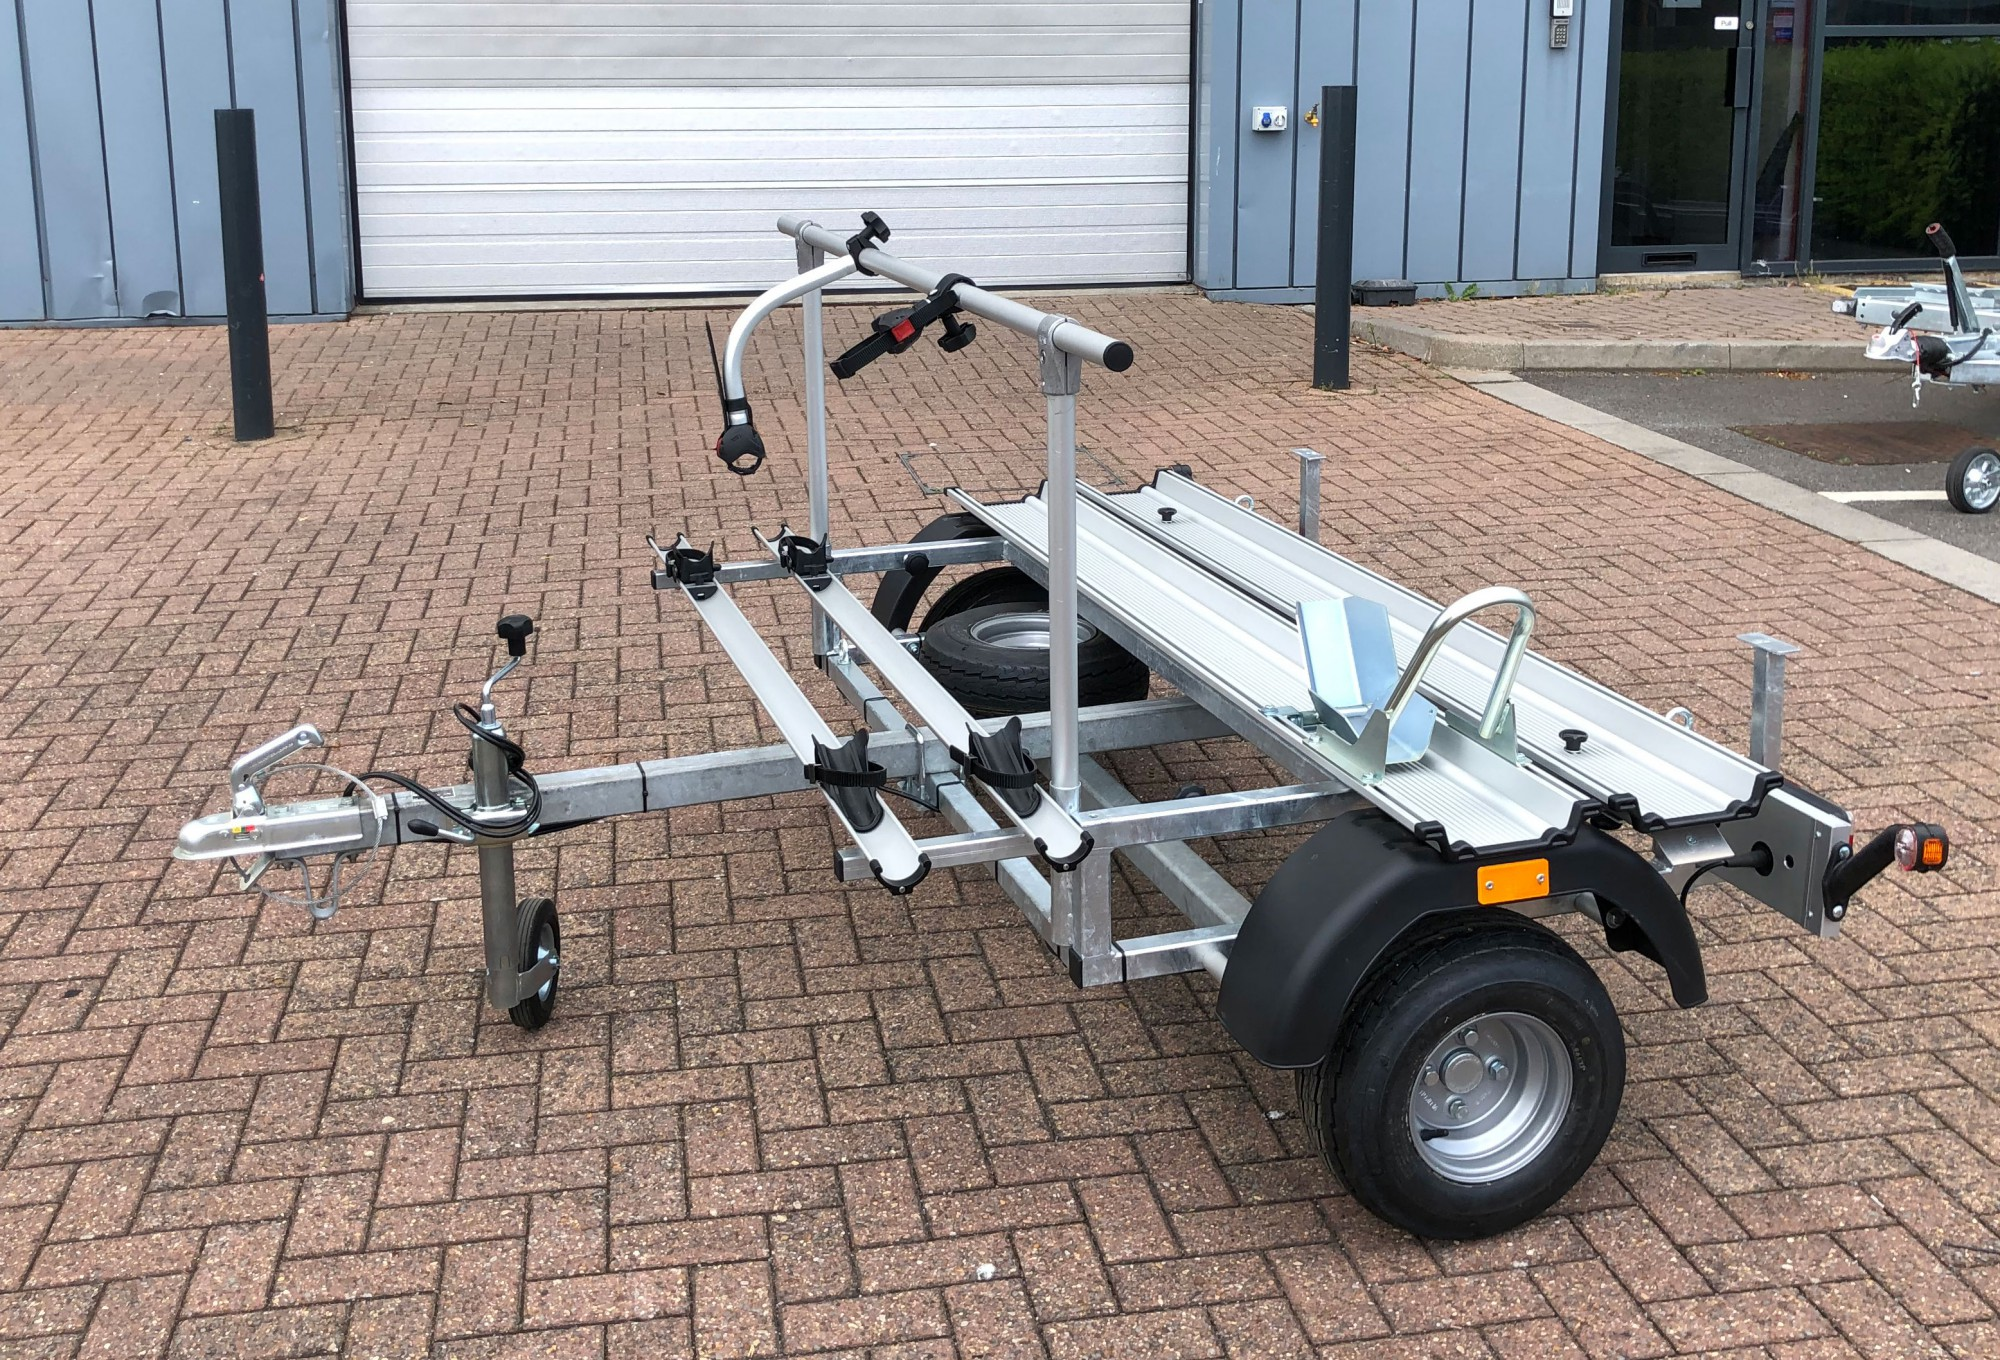 9MP3160 MP3 Motorcycle/Scooter Shorty Trailer 160Kg Load Capacity